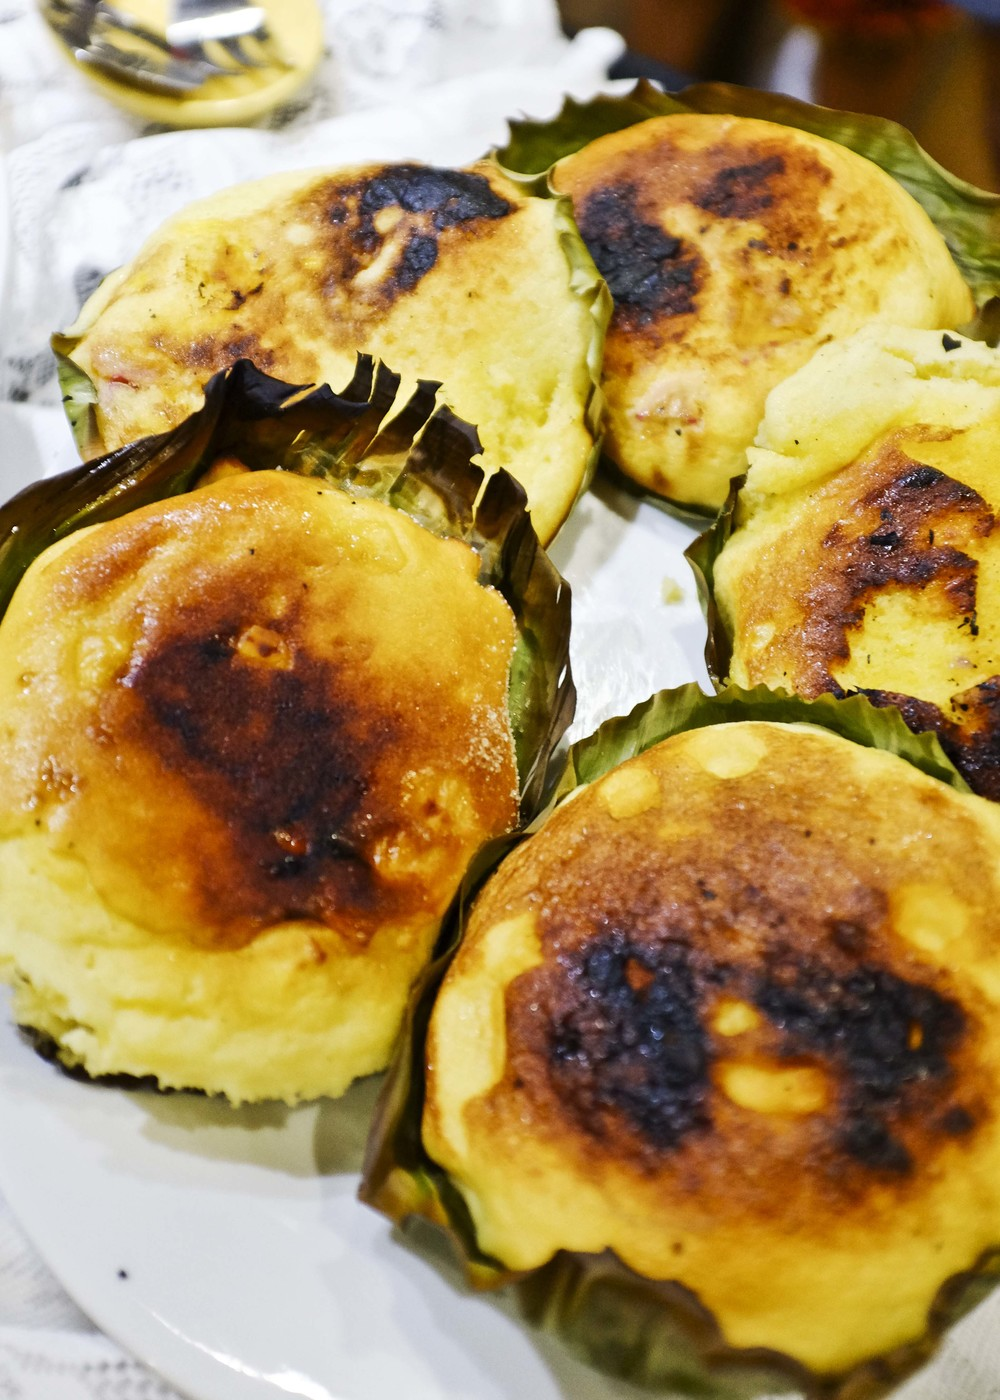 BIBINGKA.  Sorry kids. Was too full to eat this! Looked yummy, though!